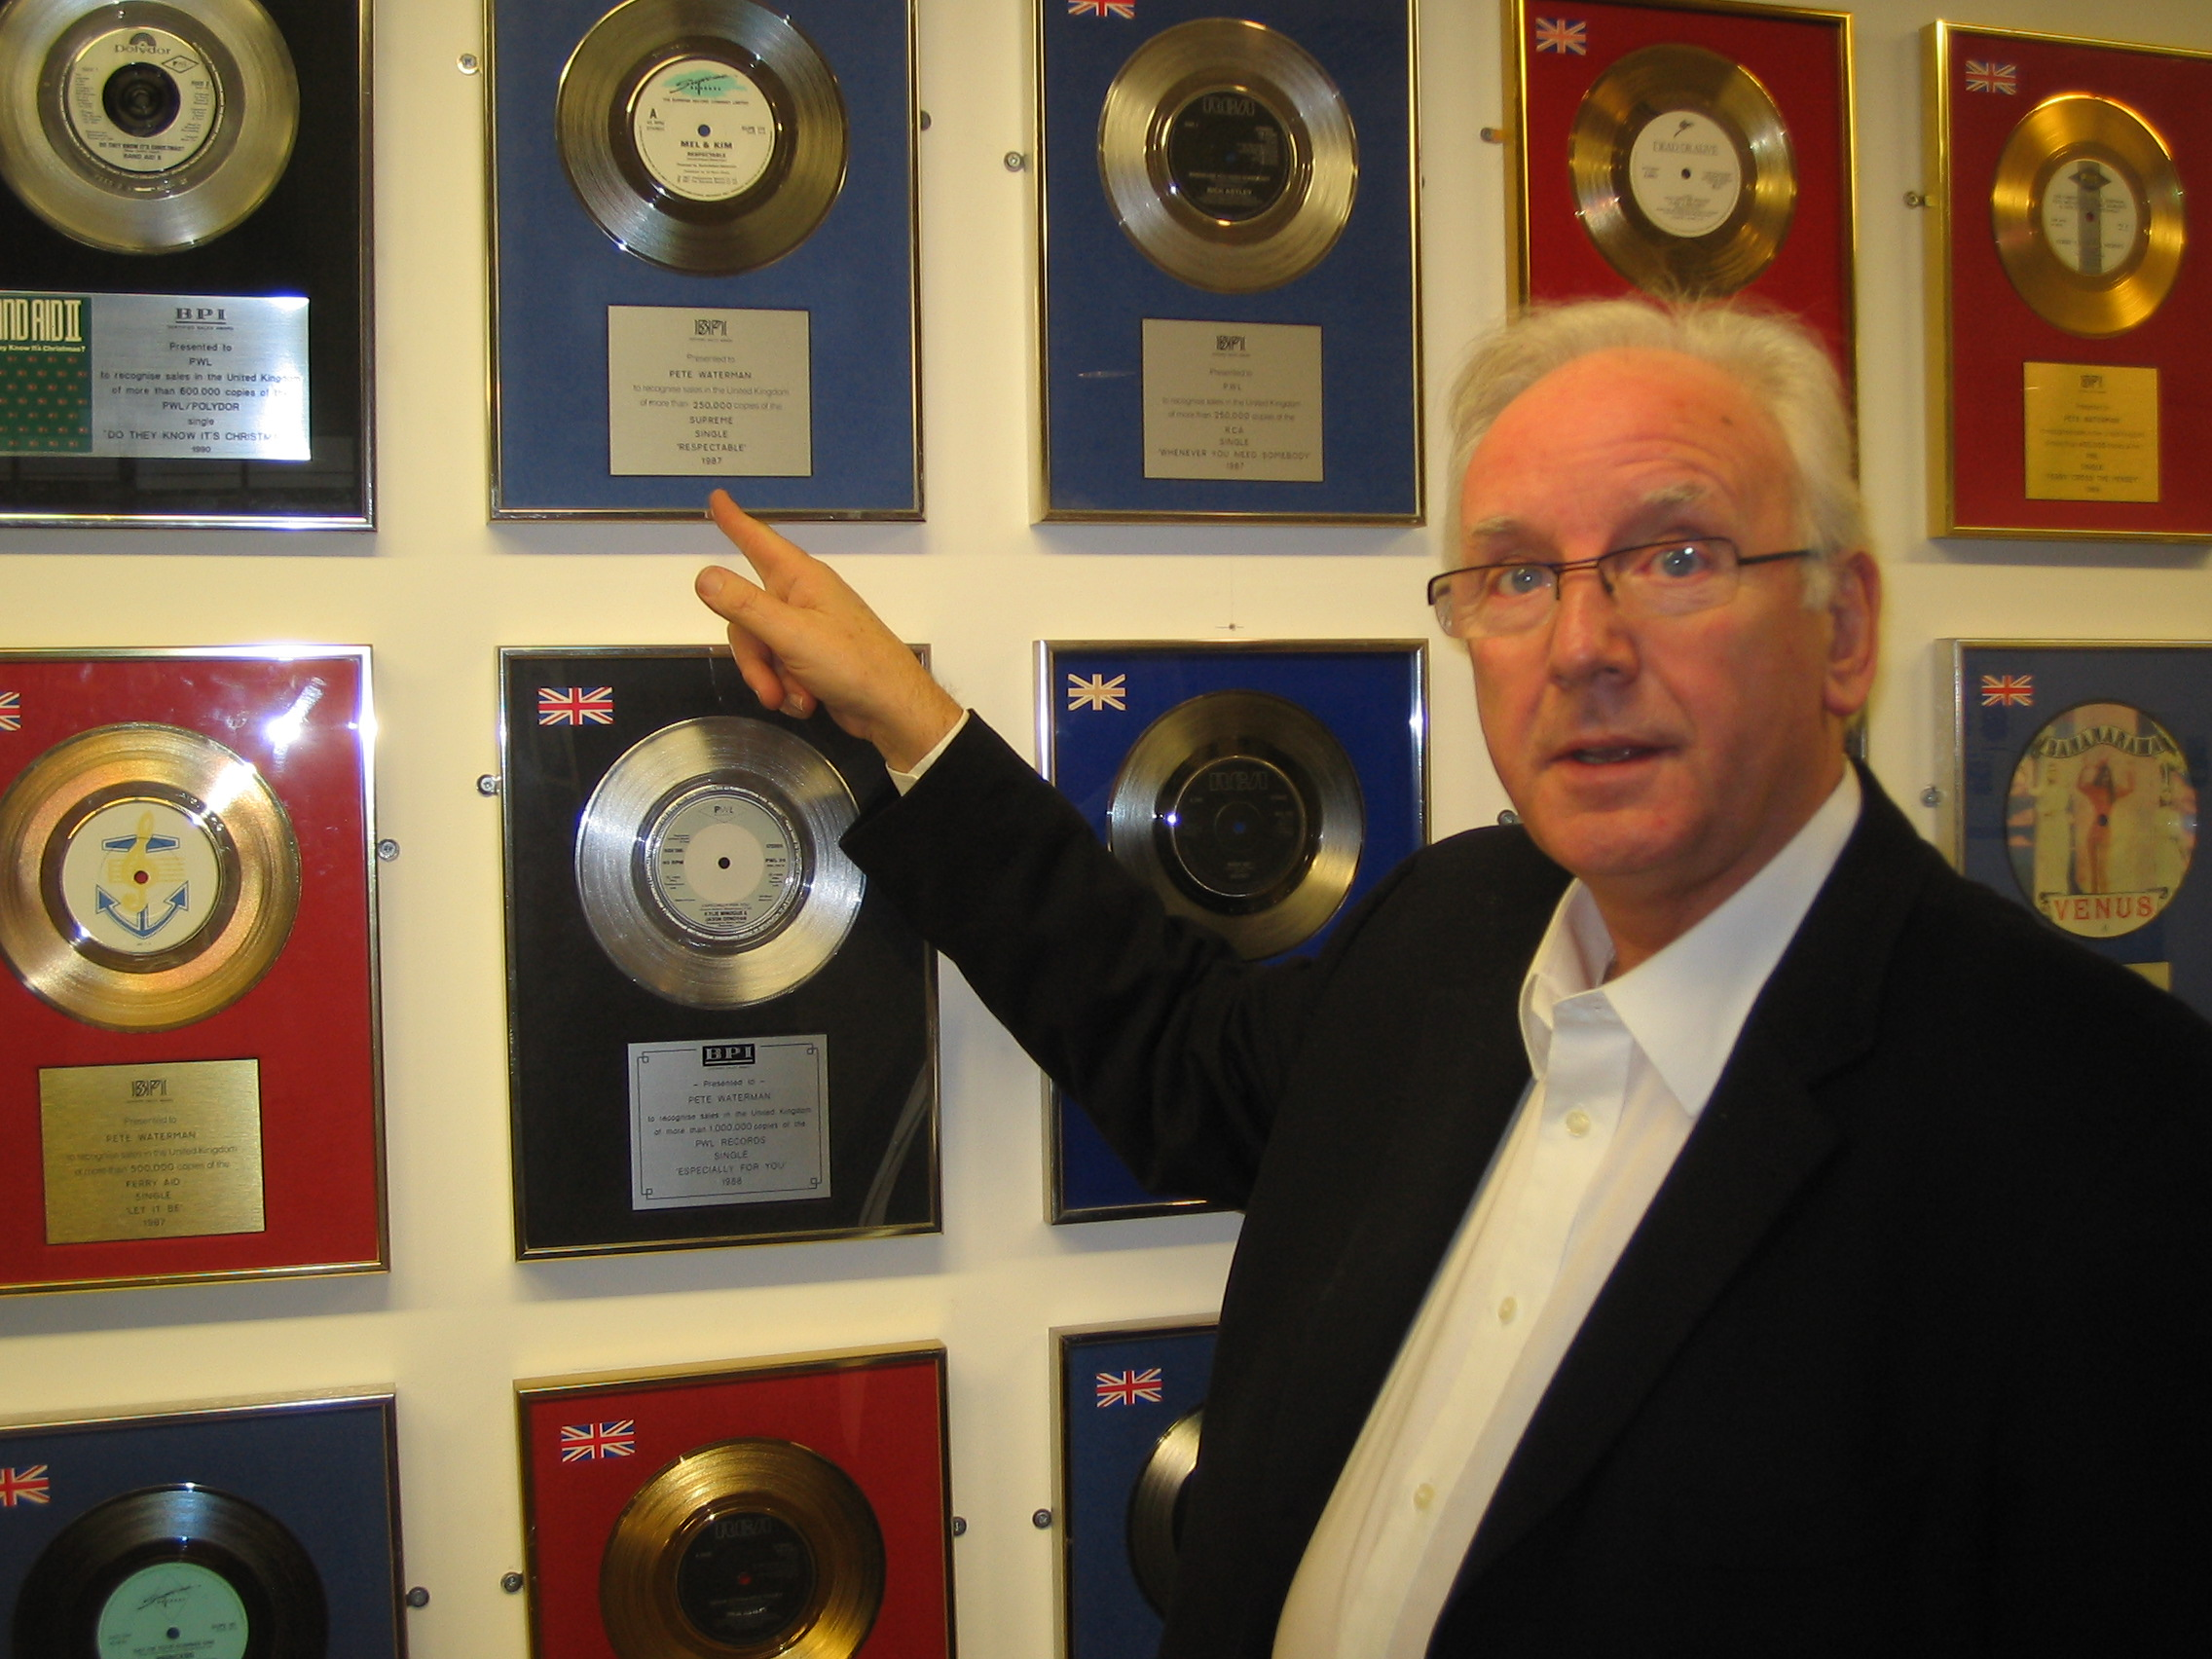 Pete Waterman: I don't care how much abuse The Hit Factory has had